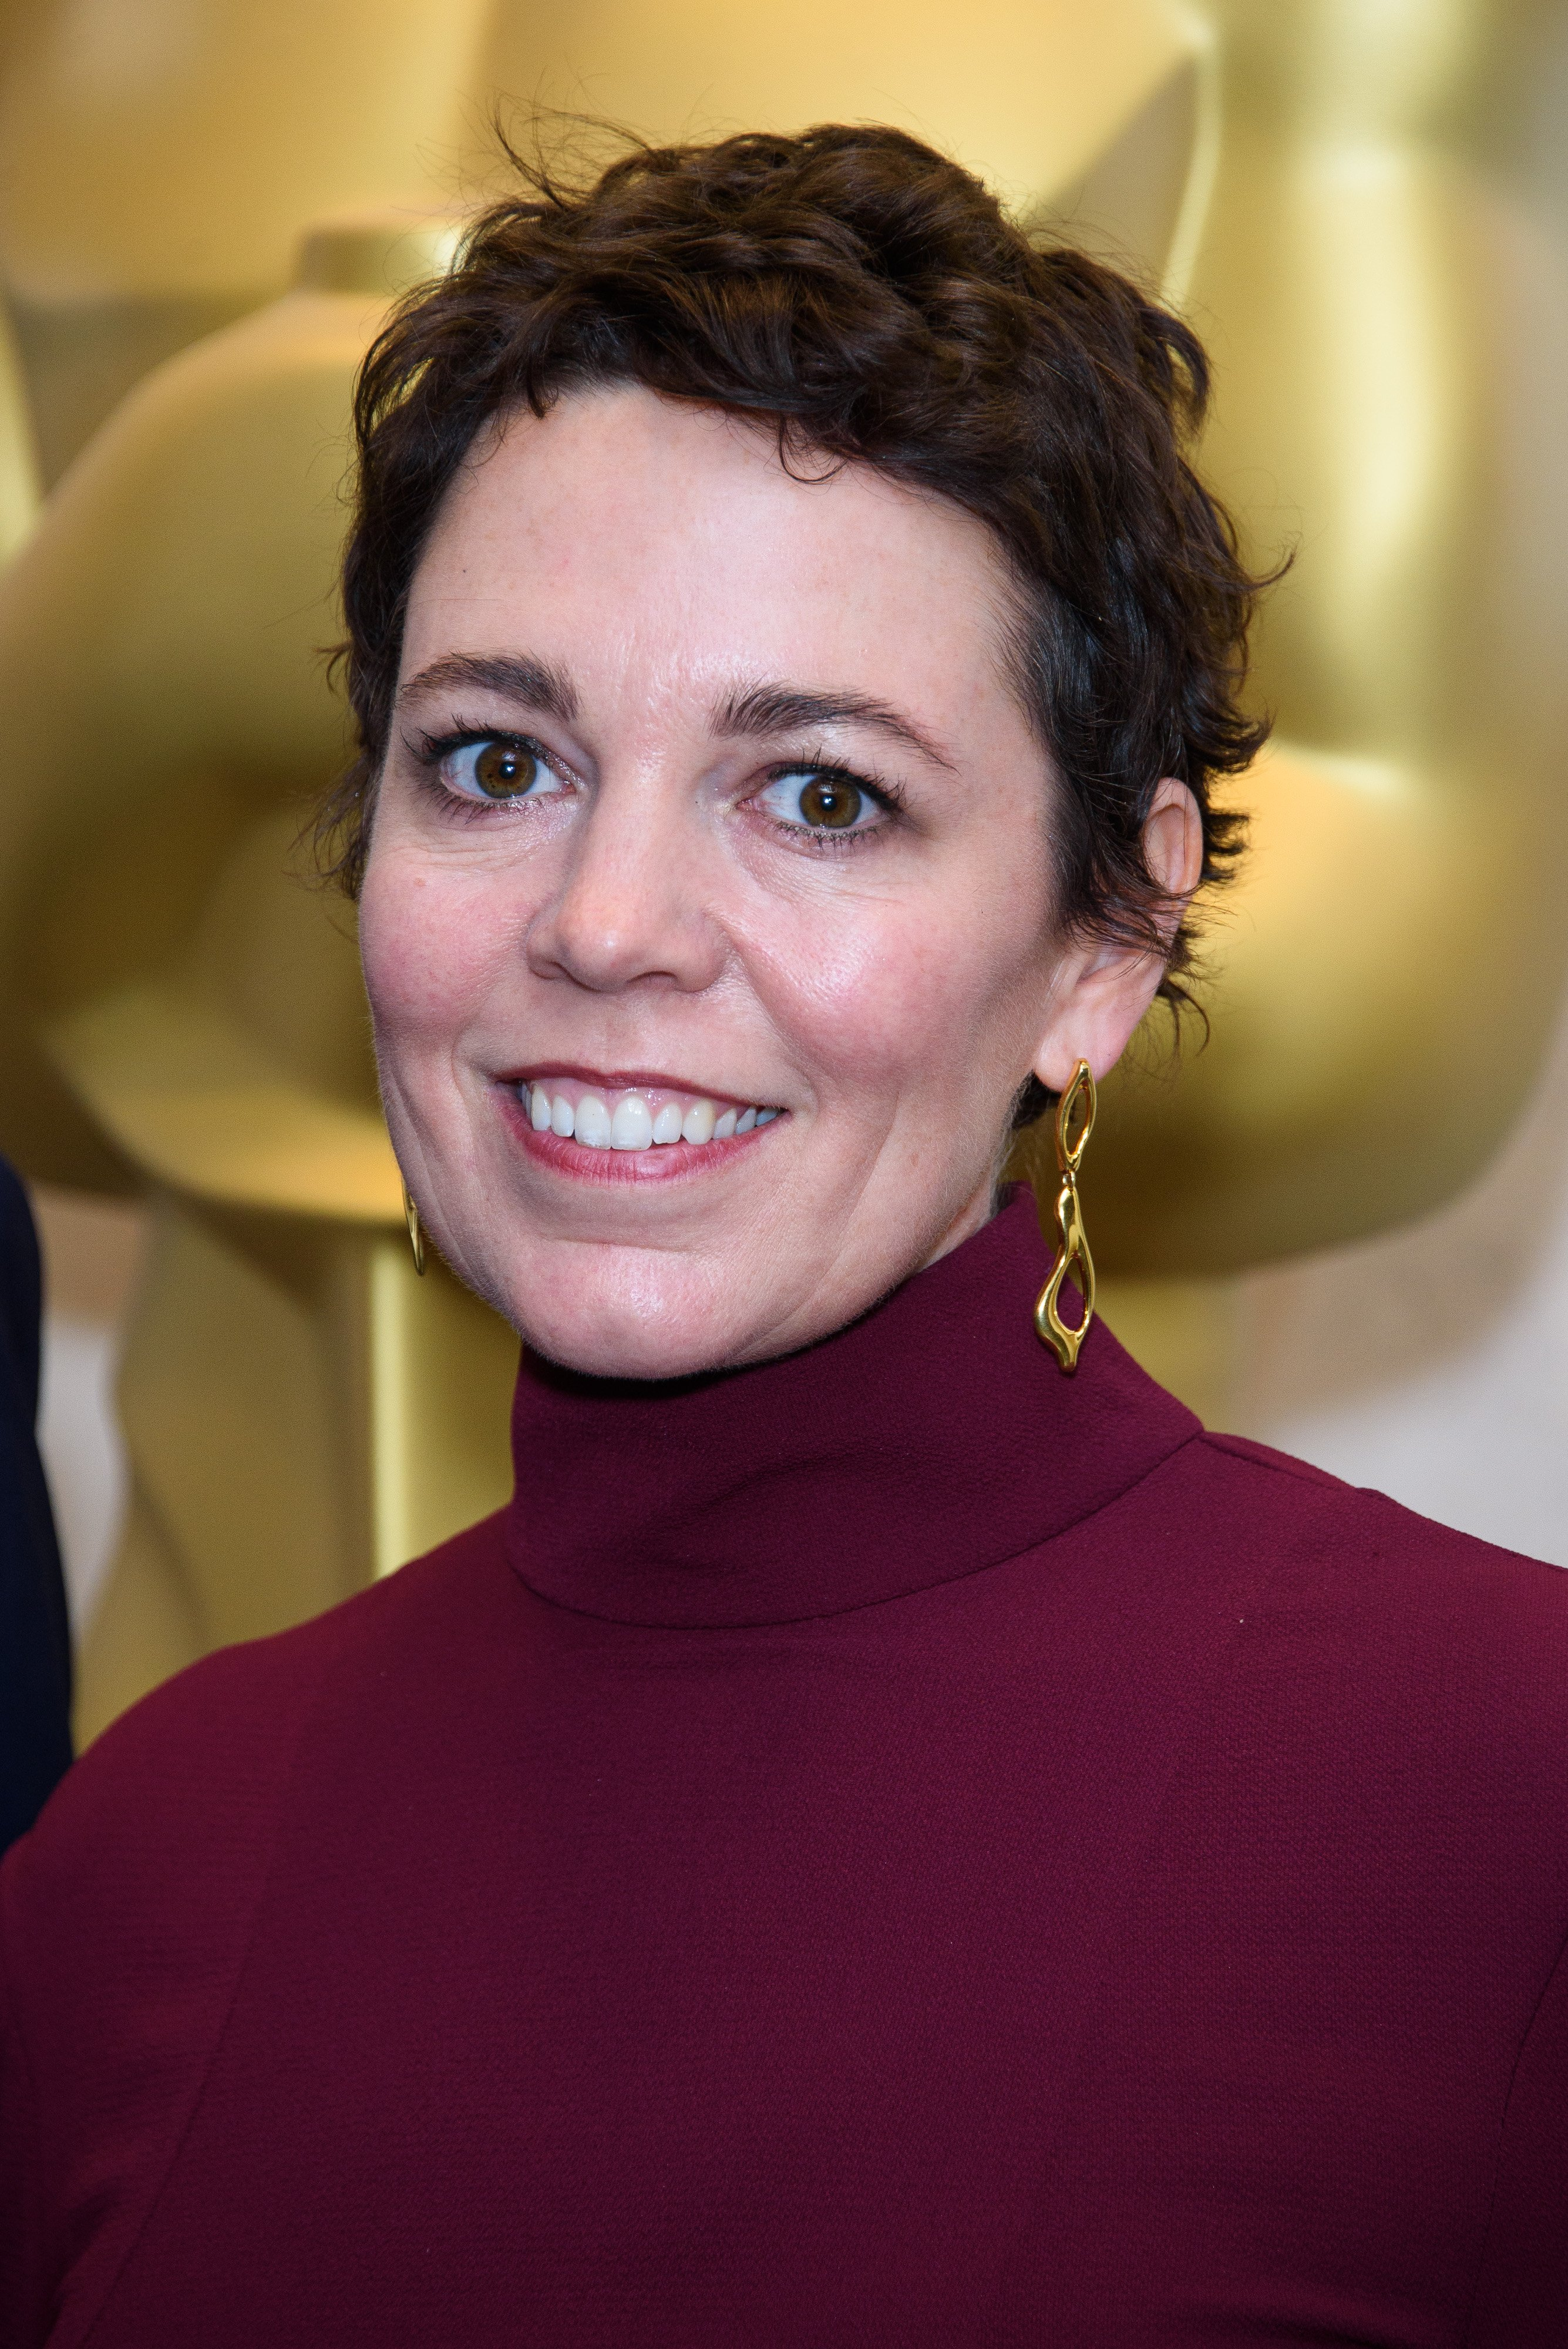 Olivia Colman attends the Academy of Motion Picture Arts and Scienes reception in London, England on October 13, 2018 | Photo: Getty Images